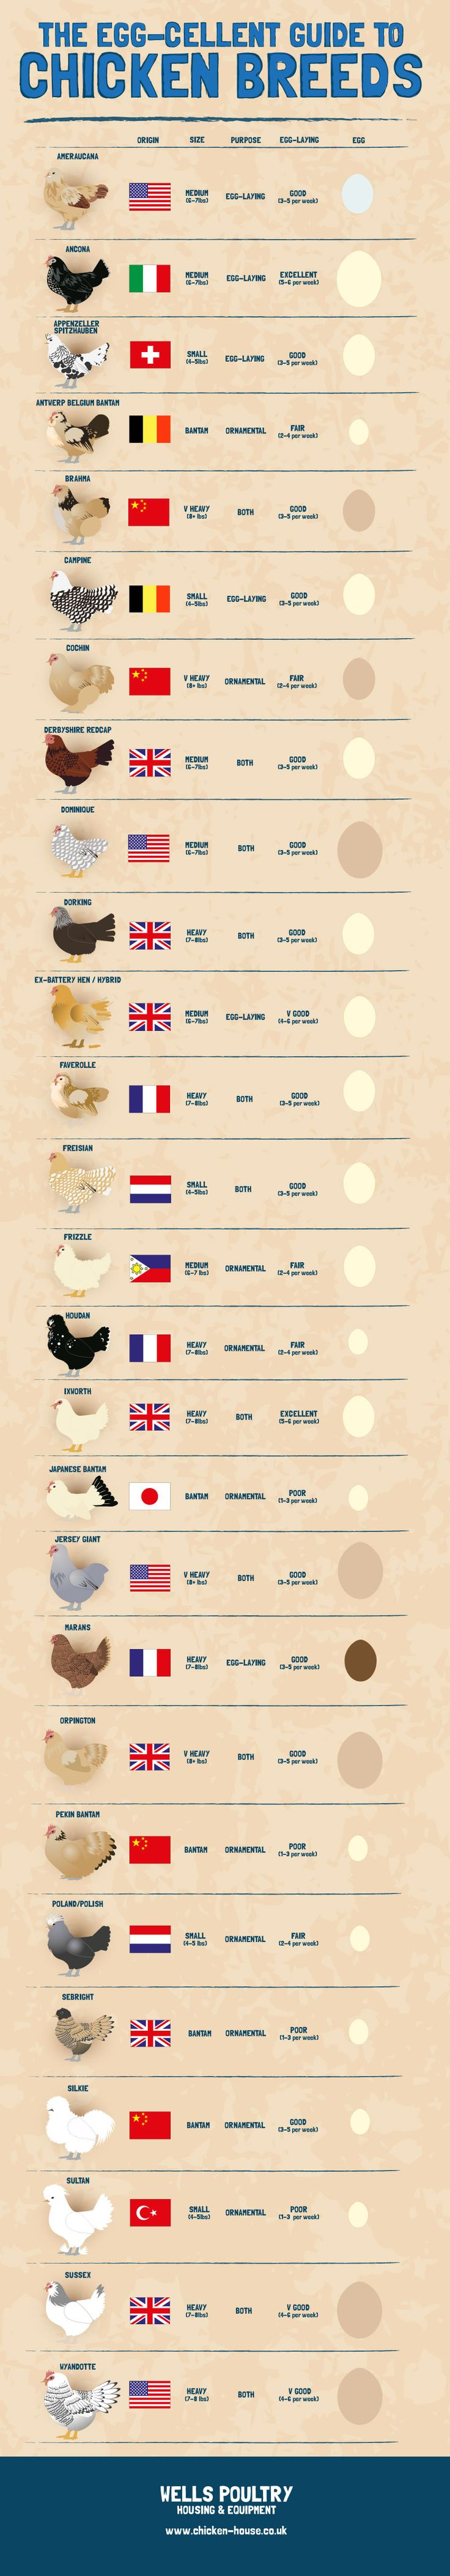 The Egg-Cellent Guide to Chicken Breeds - Wells Poultry Blog